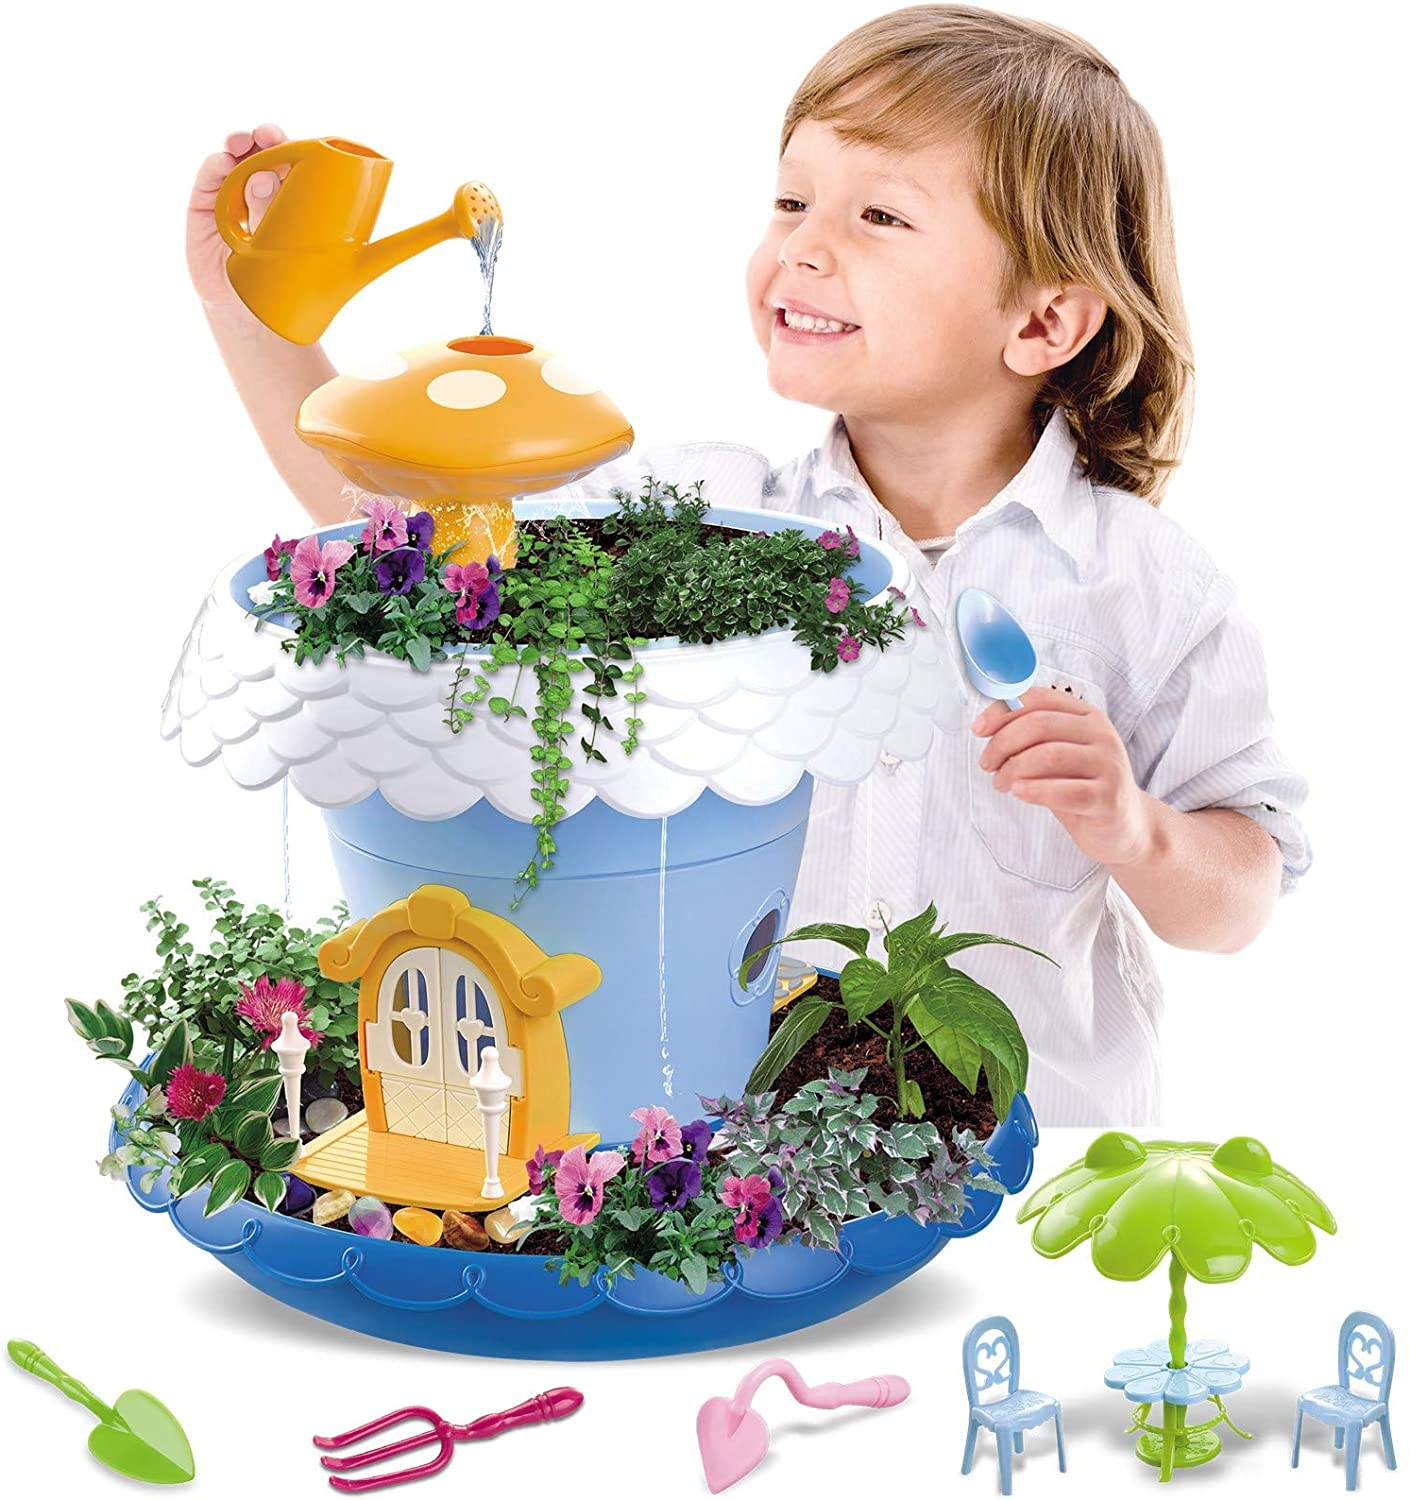 Kids Magical Garden Growing Kit Includes Everything You Need Tools Seeds Soil Flower Plant Tree House Interactive Play Fairy Toys Inspires Horticulture Learning Great Gift For Children Girl Boy